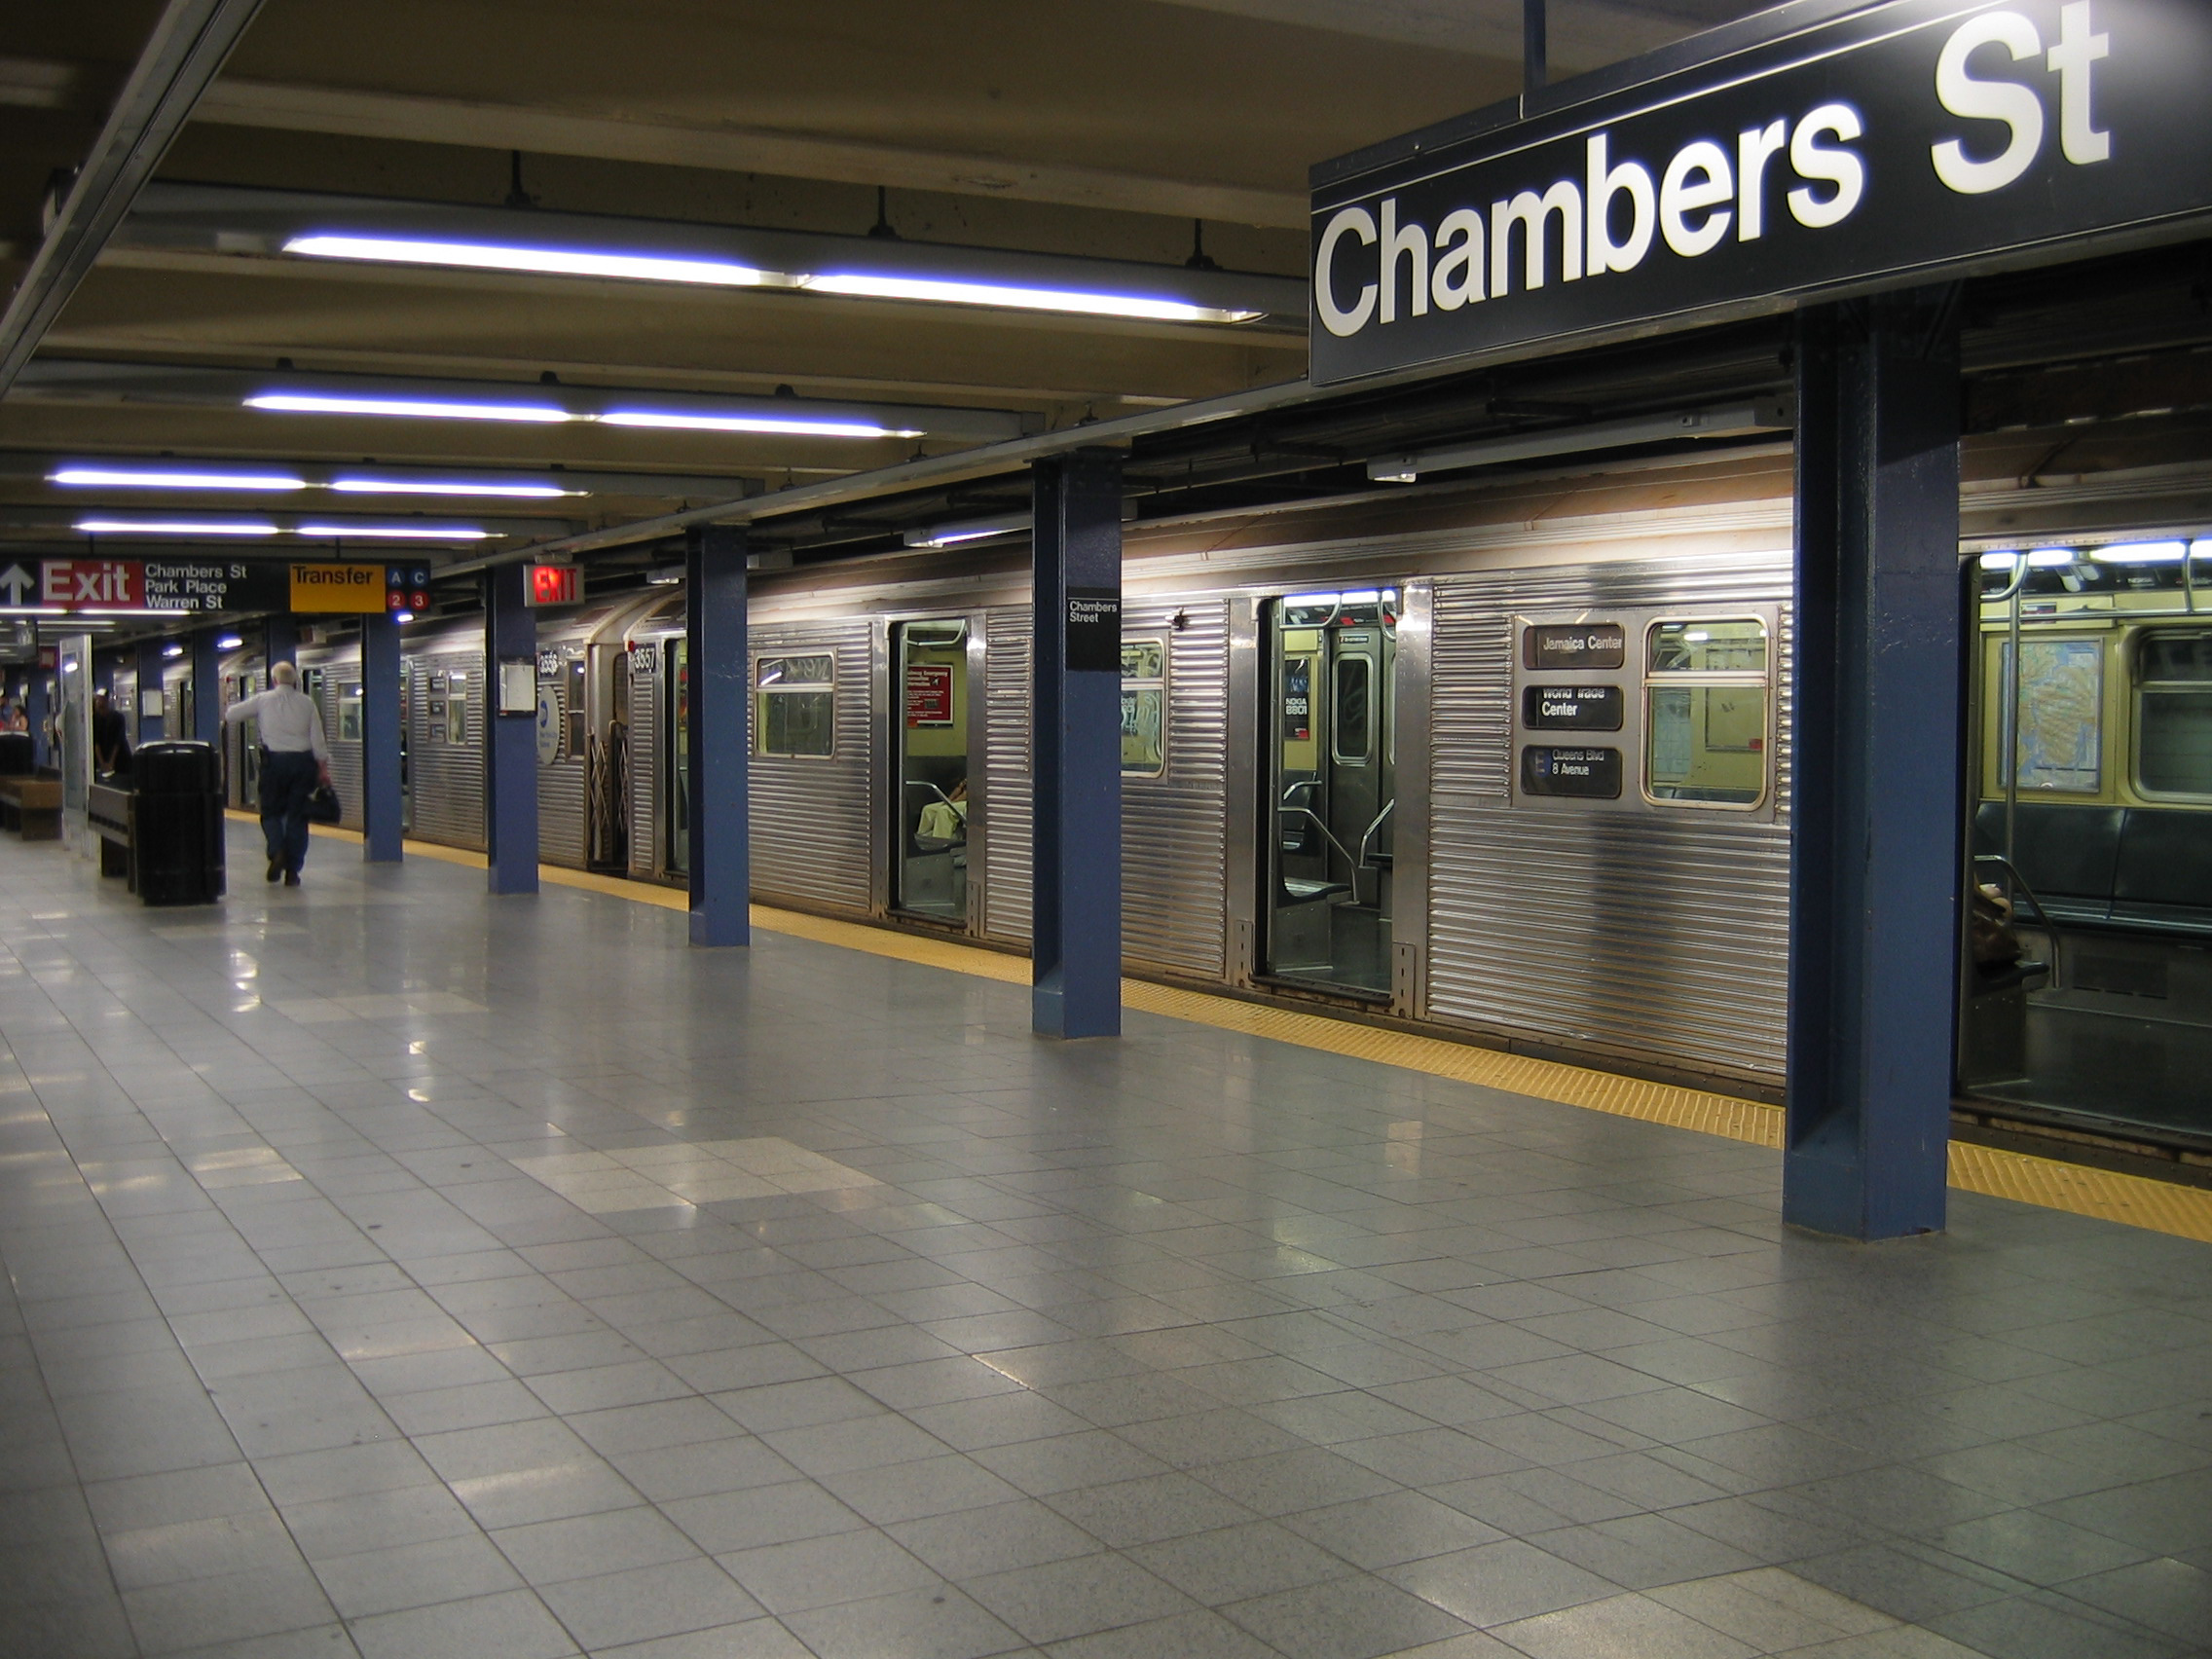 Subway system in New York